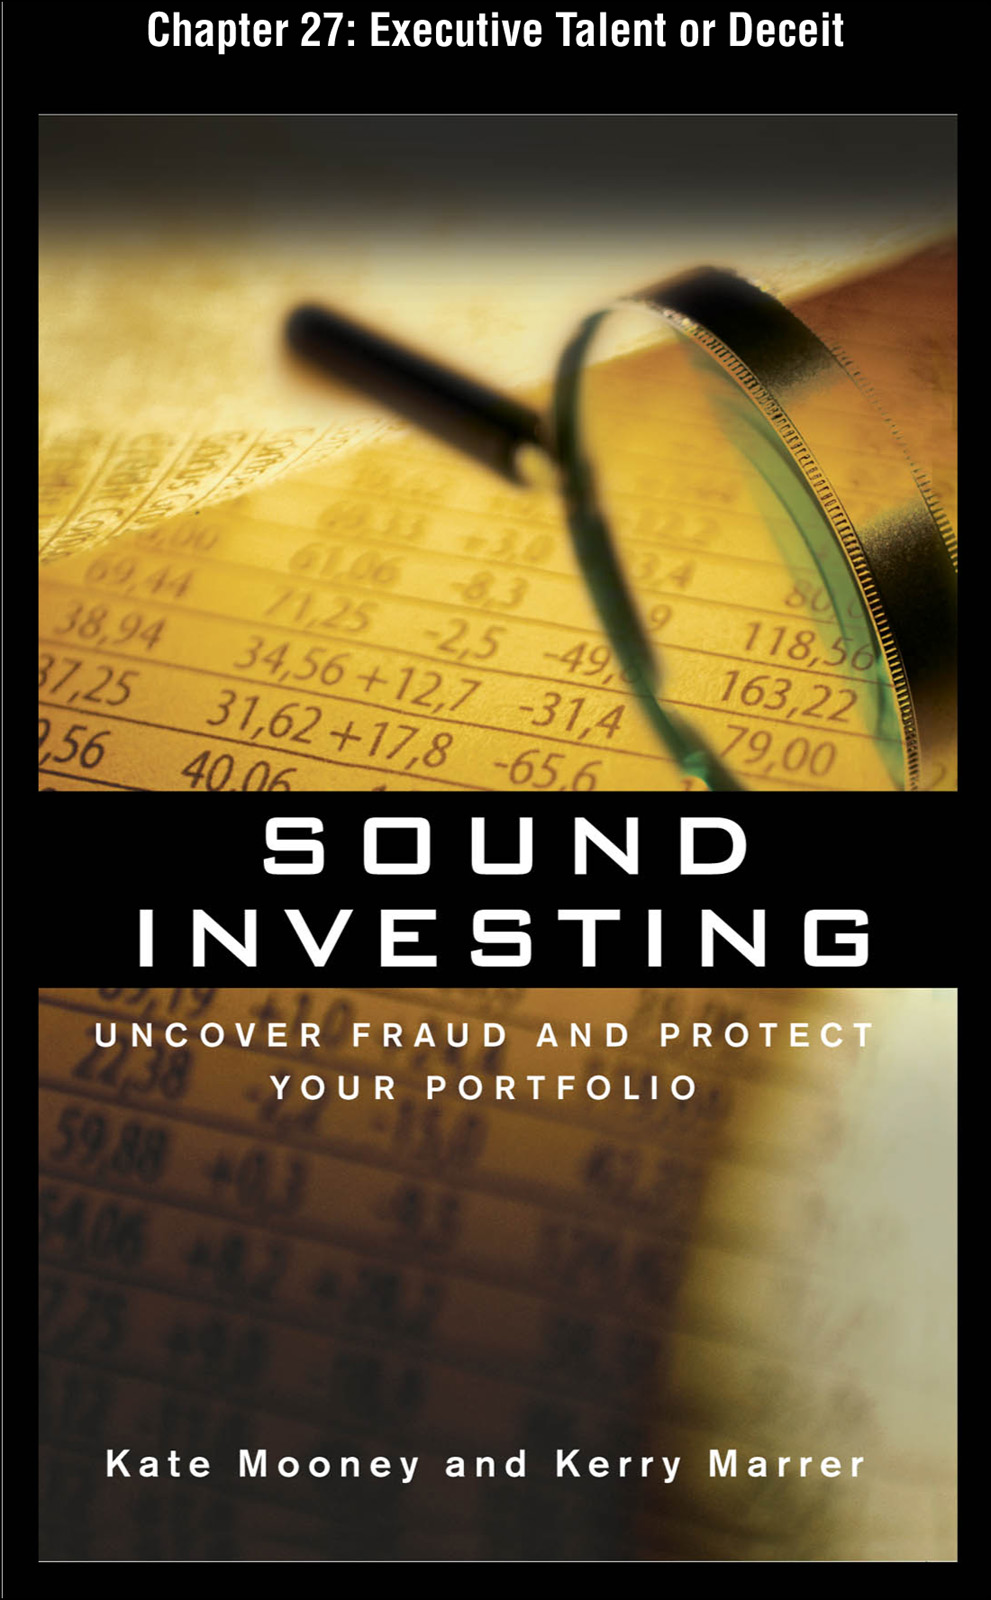 Sound Investing : Uncover Fraud and Protect Your Portfolio: Executive Talent or Deceit